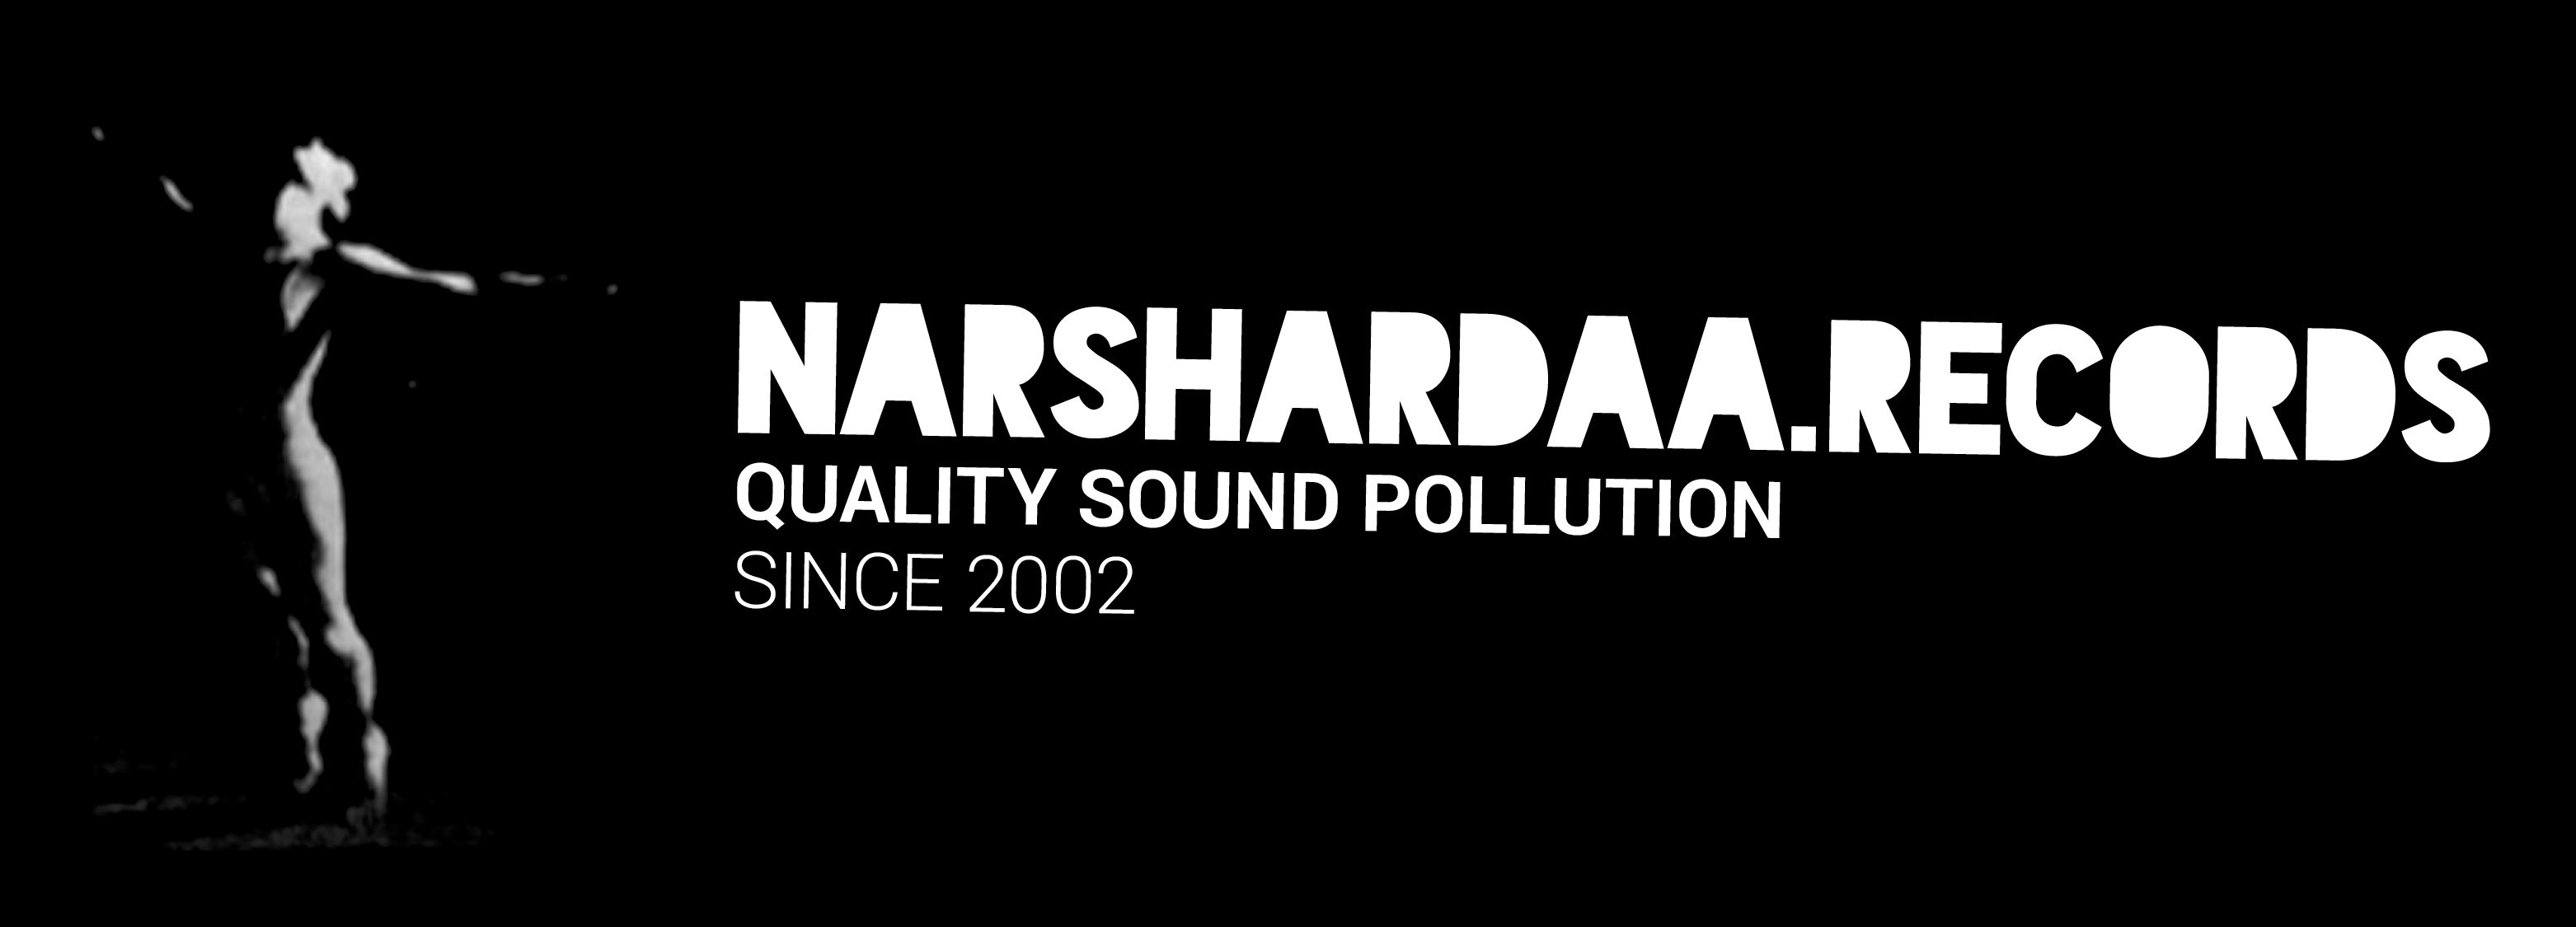 Narshardaa.Records Logo